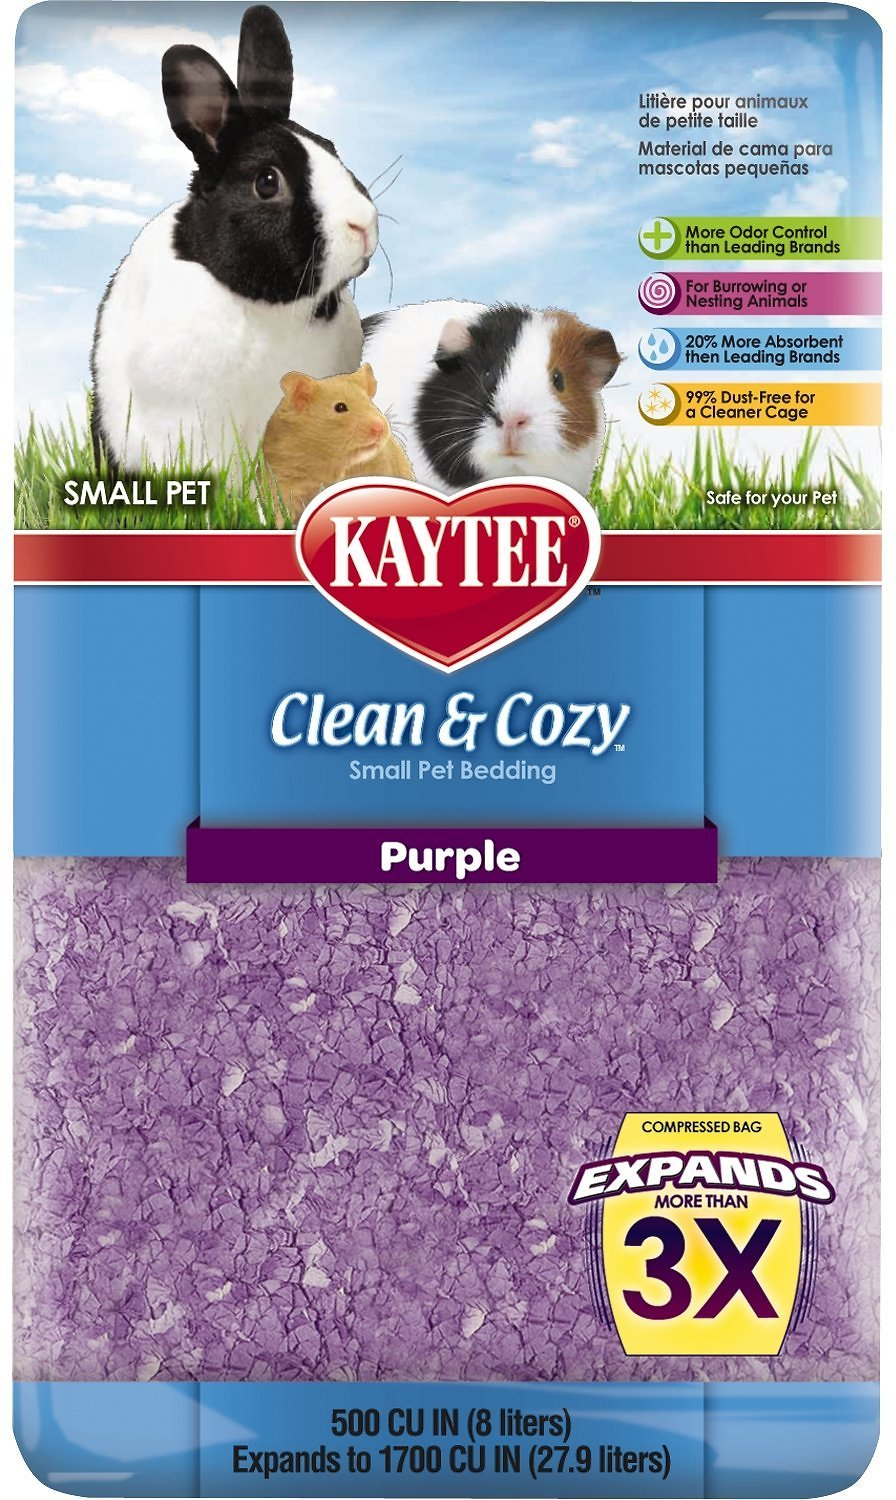 kaytee clean and cozy small animal bedding, purple, 27.9-l - chewy